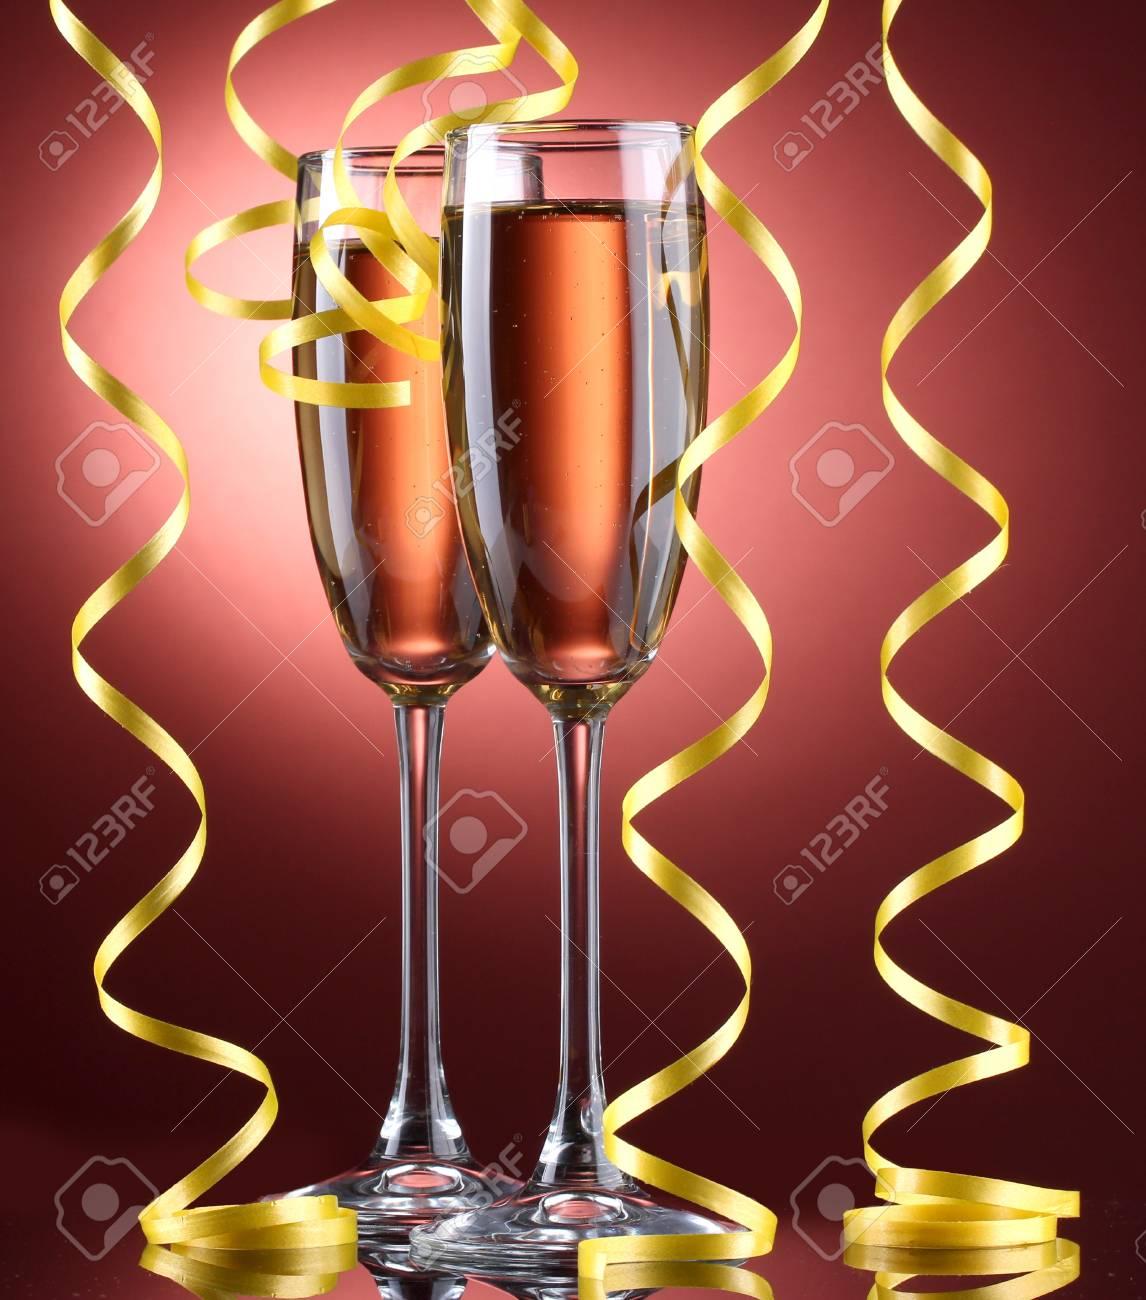 glasses of champagne and streamer on red background Stock Photo - 13275545